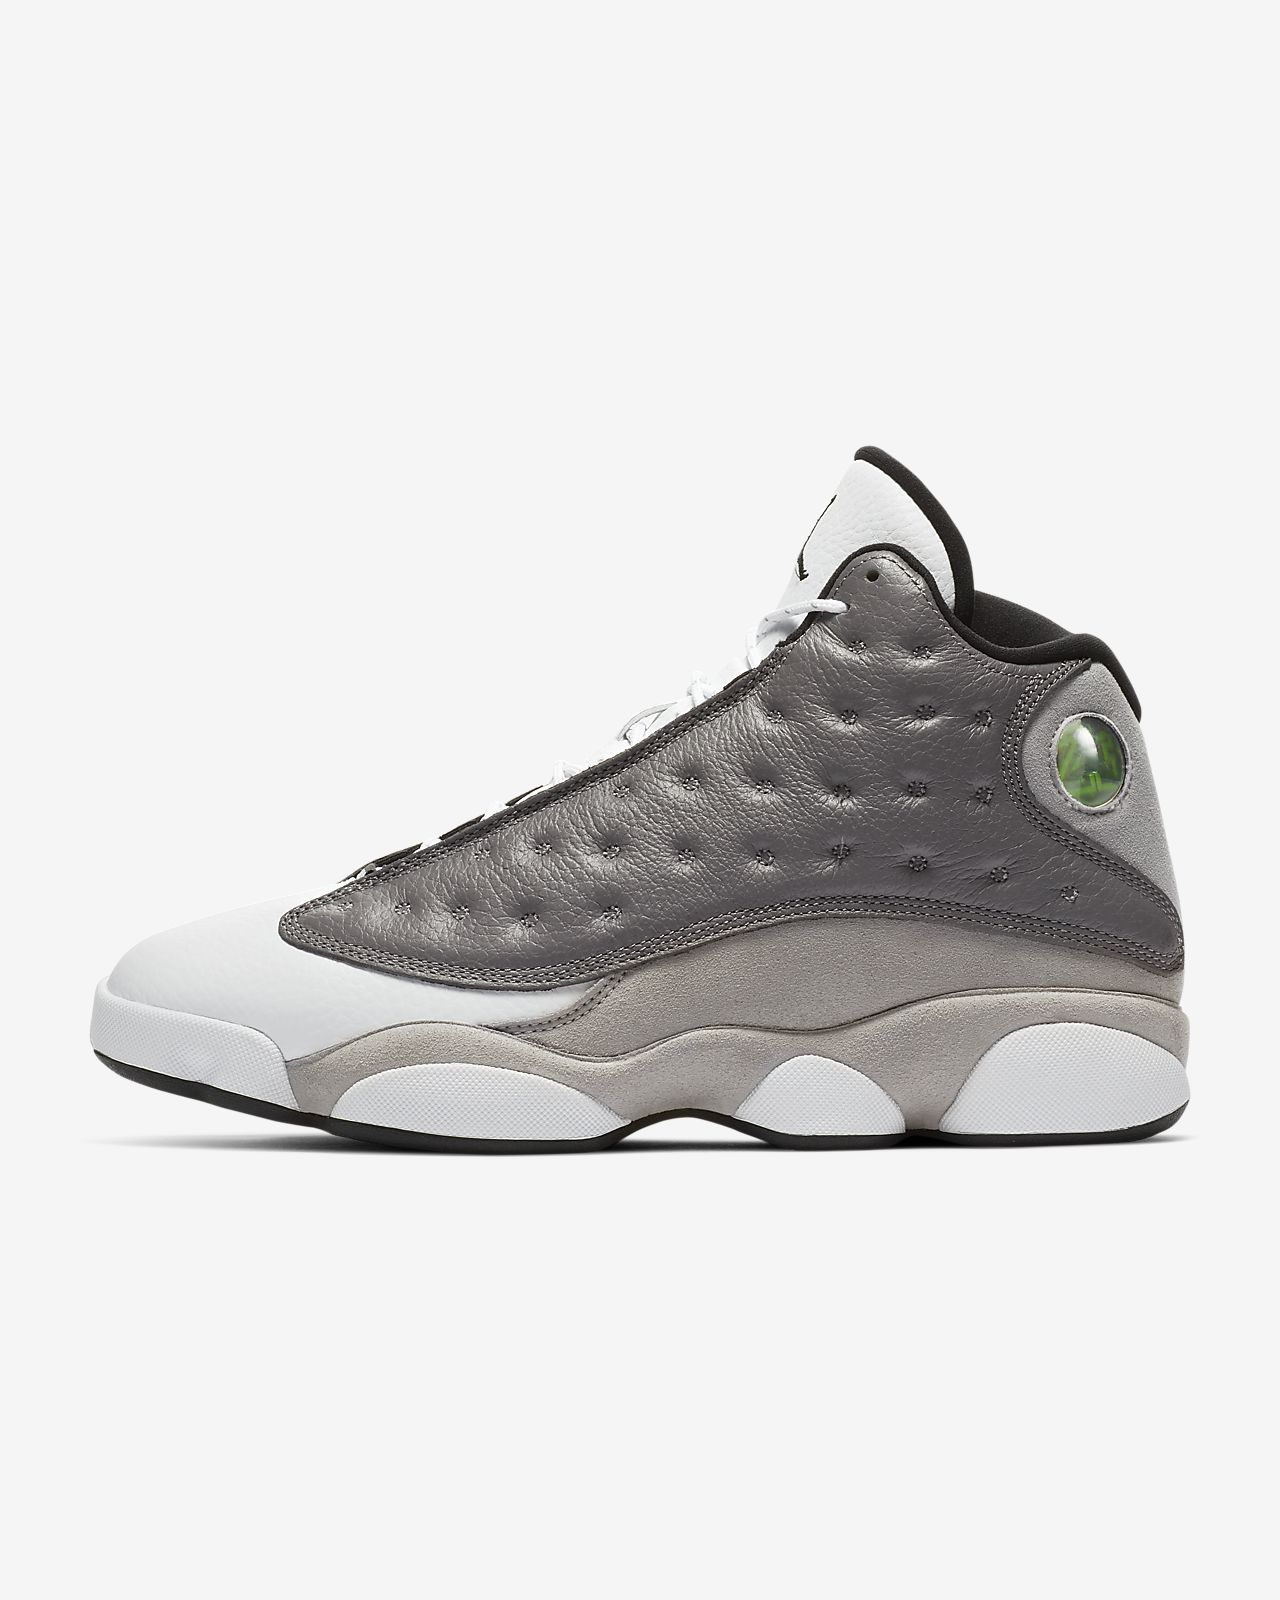 5bf72ae4ecc Air Jordan 13 Retro Men's Shoe. Nike.com ID